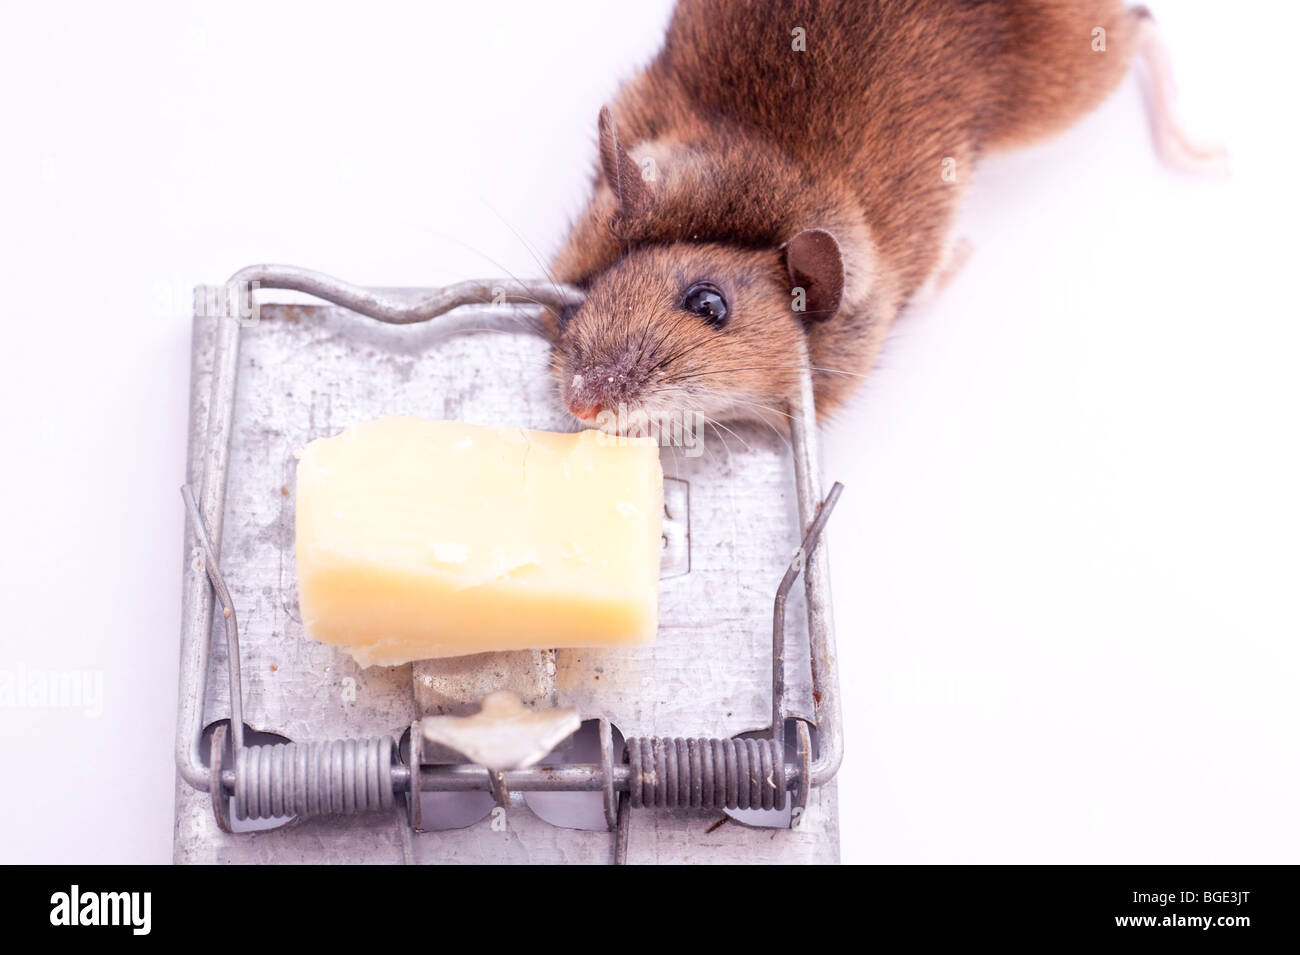 A dead mouse after having been caught in a mouse trap on a white background - Stock Image